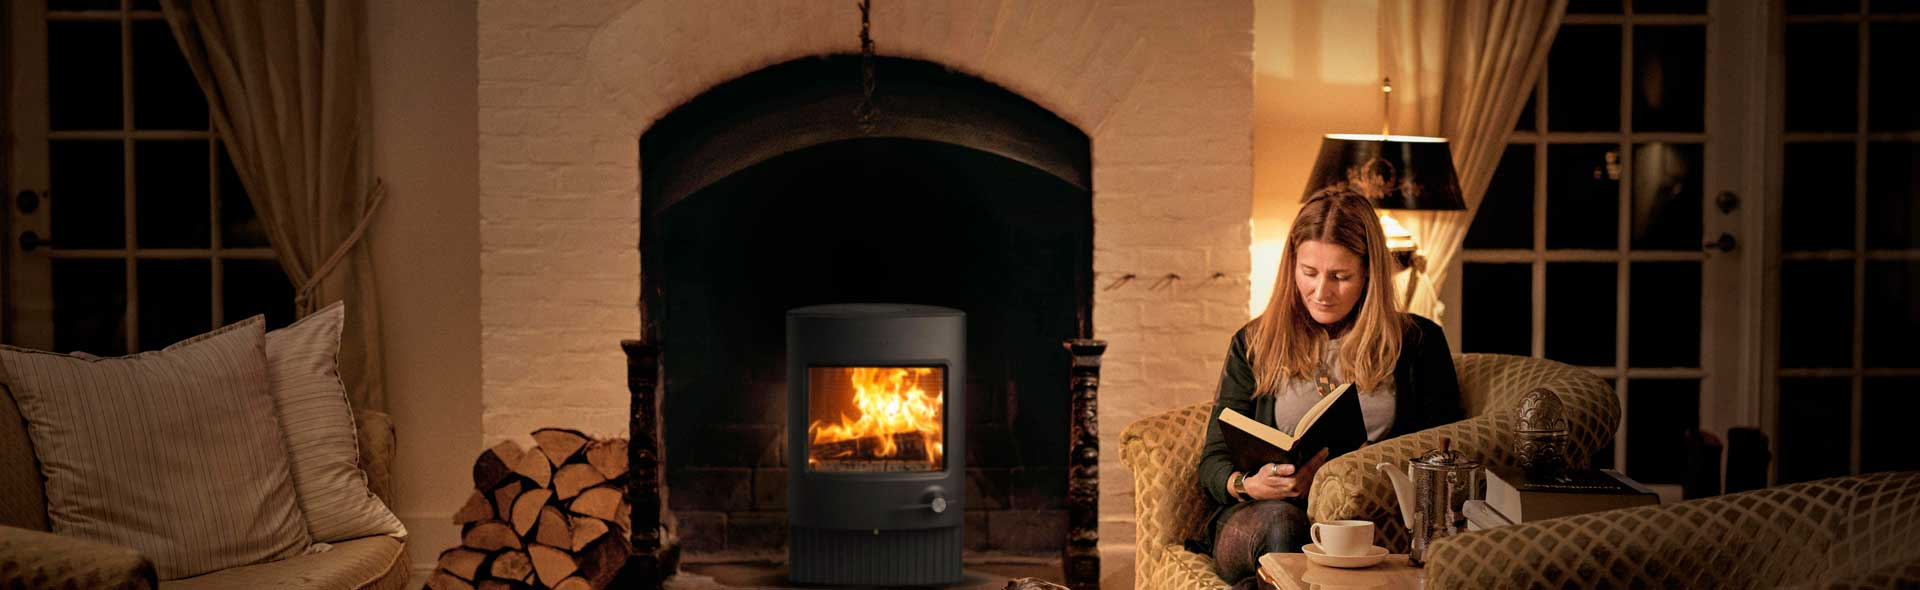 cost of wood burning stove installation